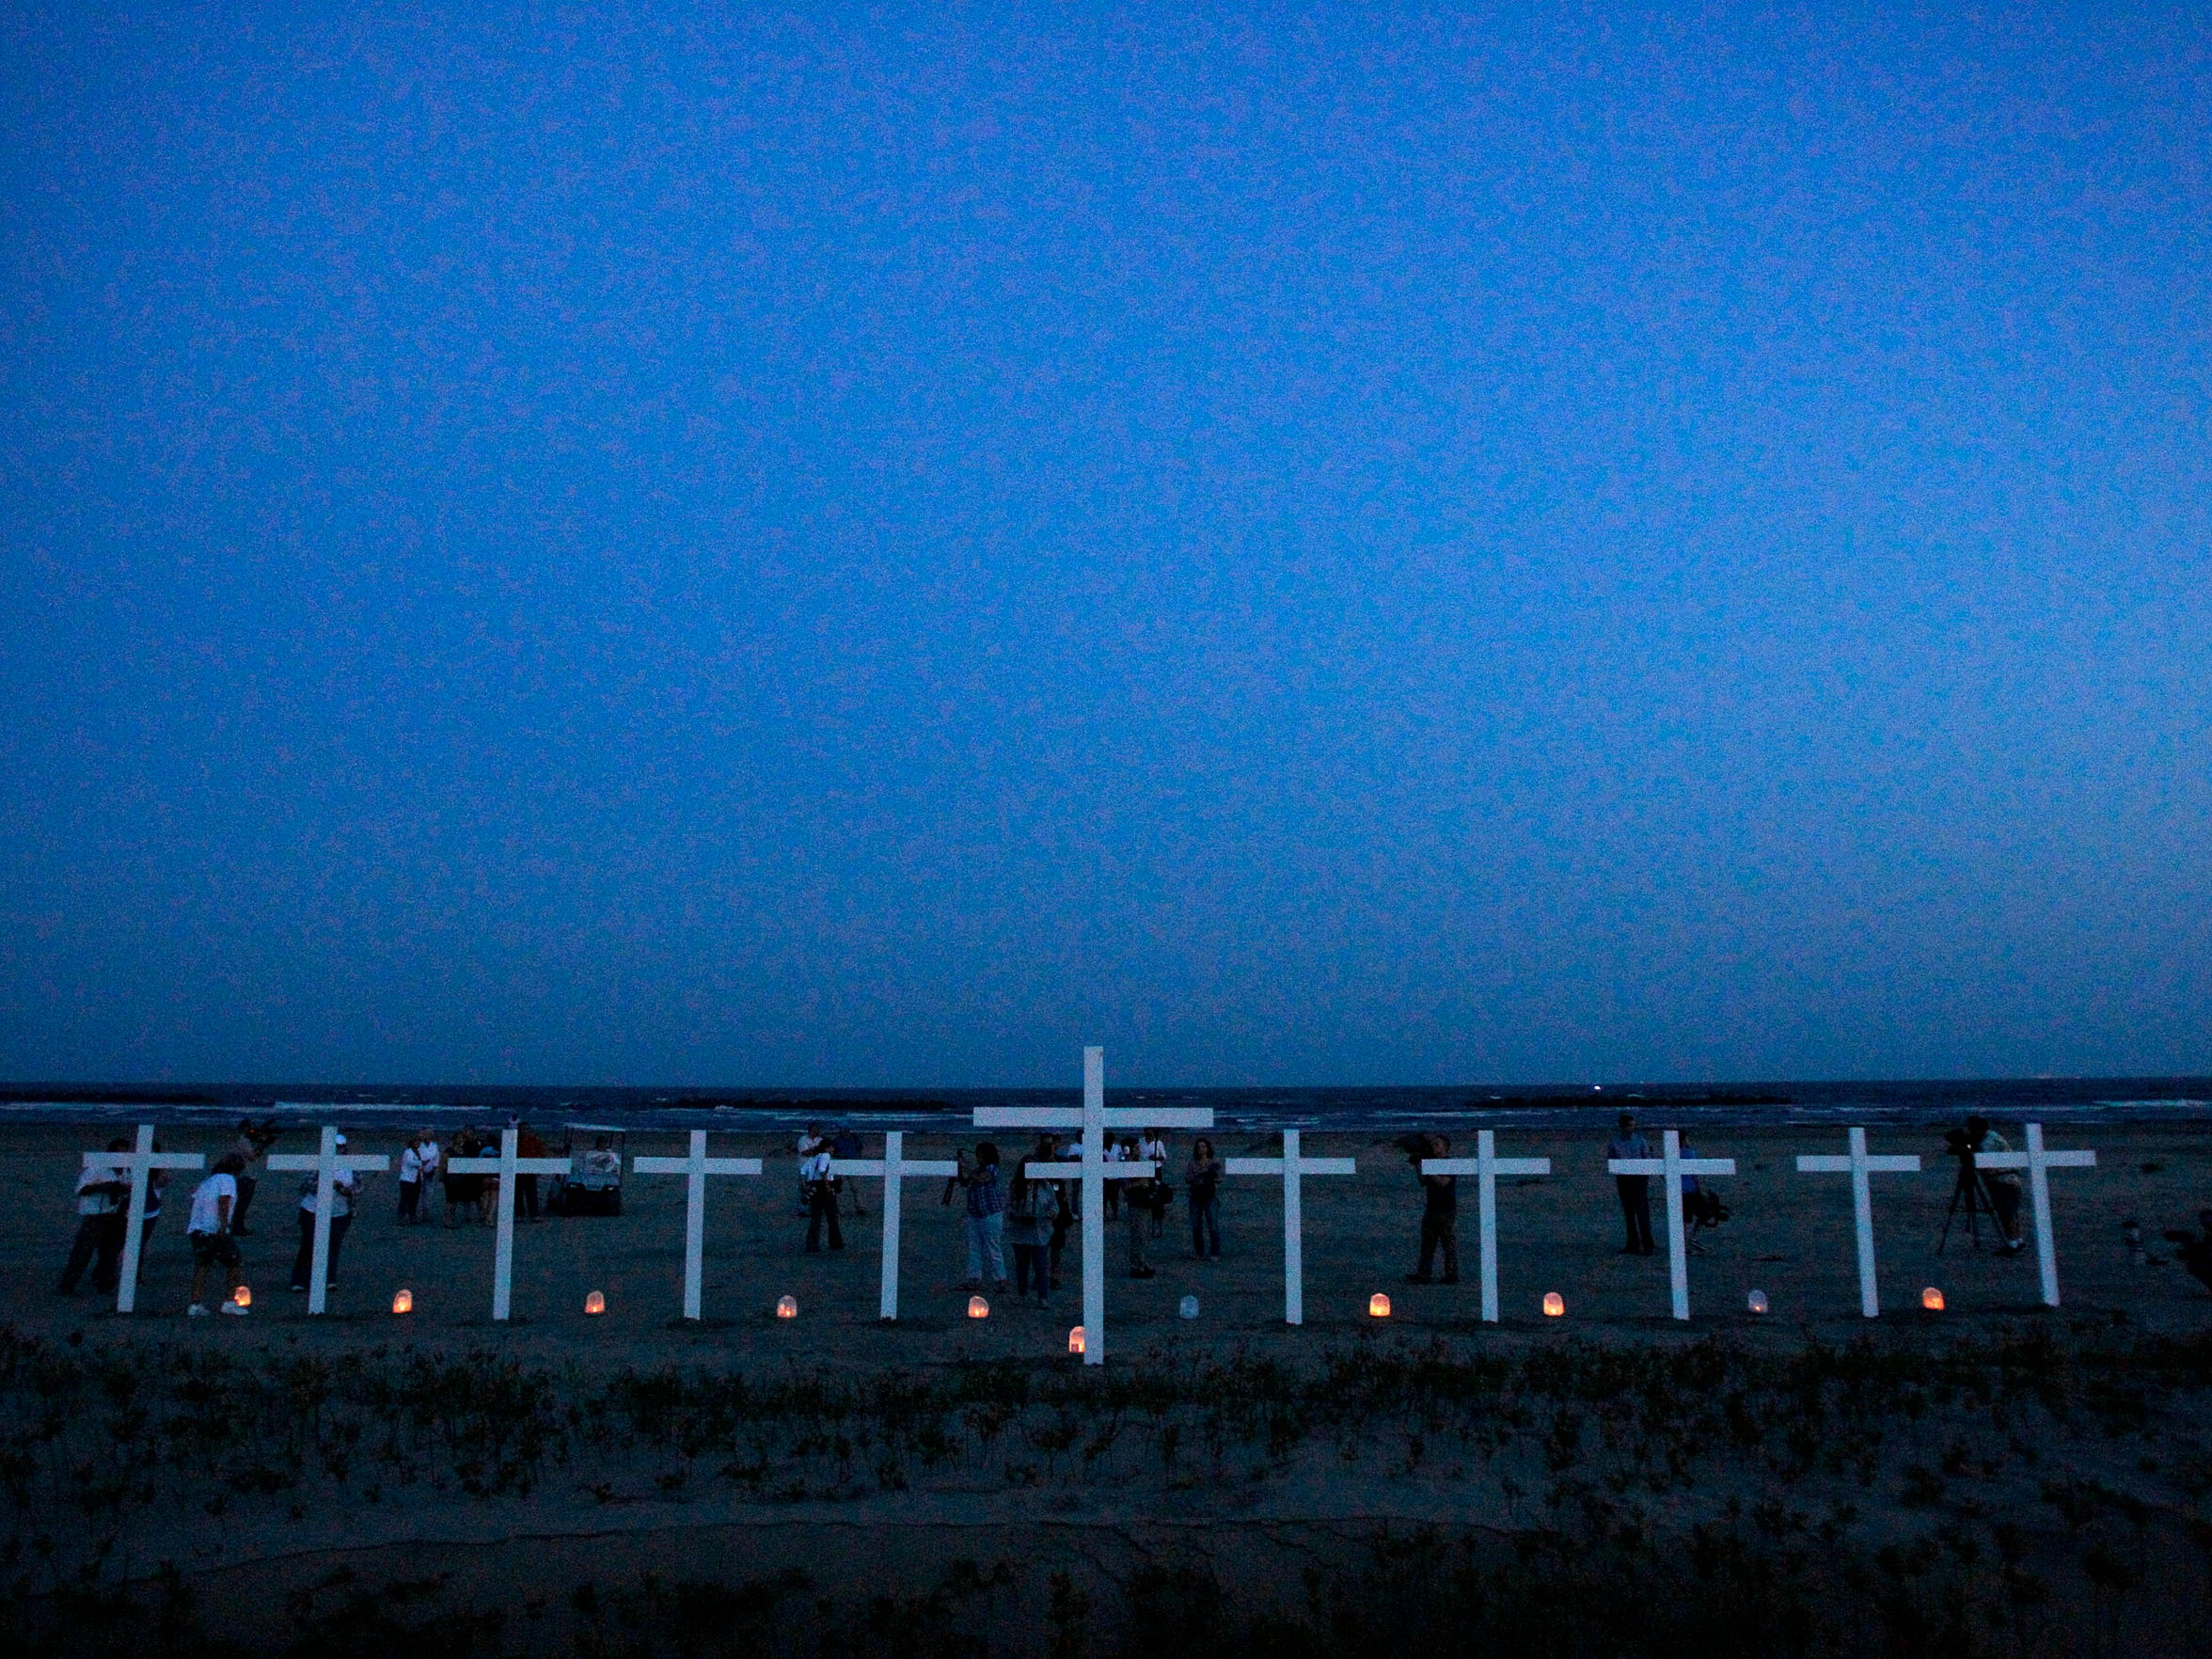 In this Wednesday, April 20, 2011 file photo, people gather at the 11 crosses erected for the workers who died in the Deepwater Horizon oil rig explosion and one for the Gulf of Mexico, center, during a vigil to mark the first anniversary of the oil spill on a beach in Grand Isle, La.